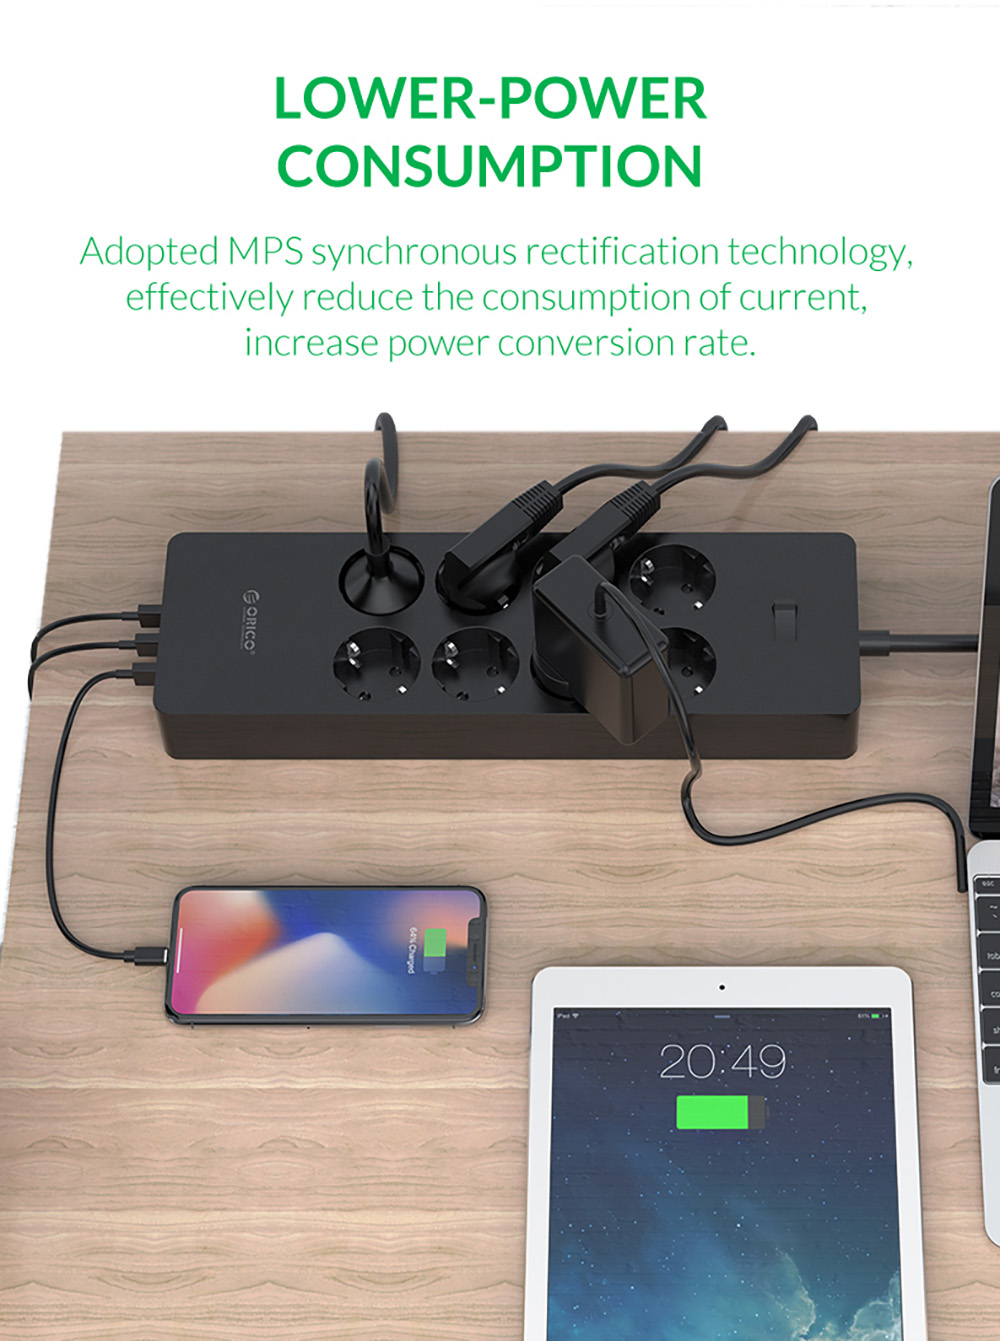 ORICO Universal Electrical Socket EU Plug Smart Extension Power Strip Home Office Surge Protector 4 6 8 AC with 5 USB - Black HPC-4A5U-V1